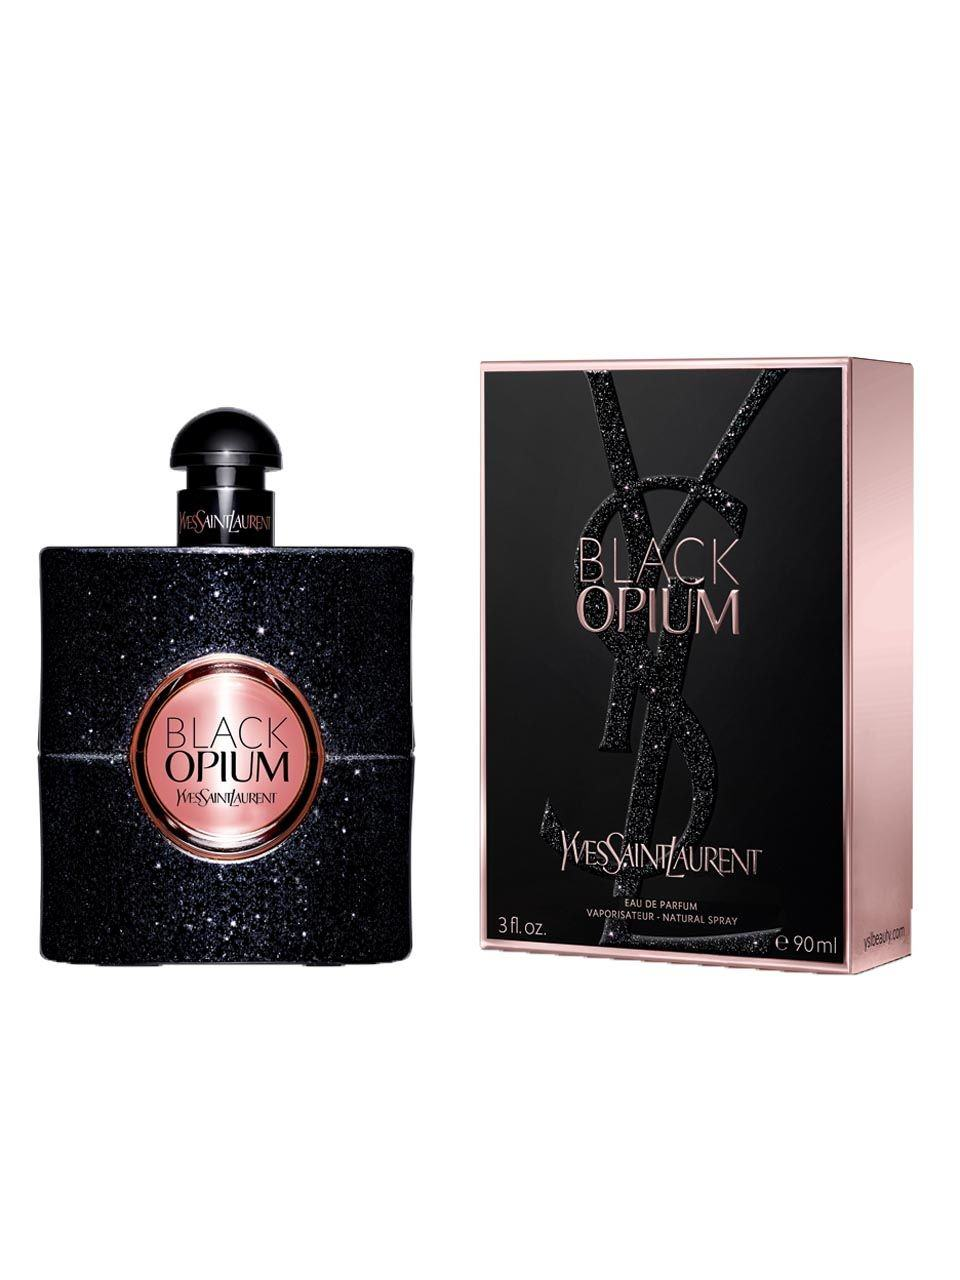 PROFUMO YVES SAINT LAURENT OPIUM BLACK DONNA EAU DE PARFUM ML 90